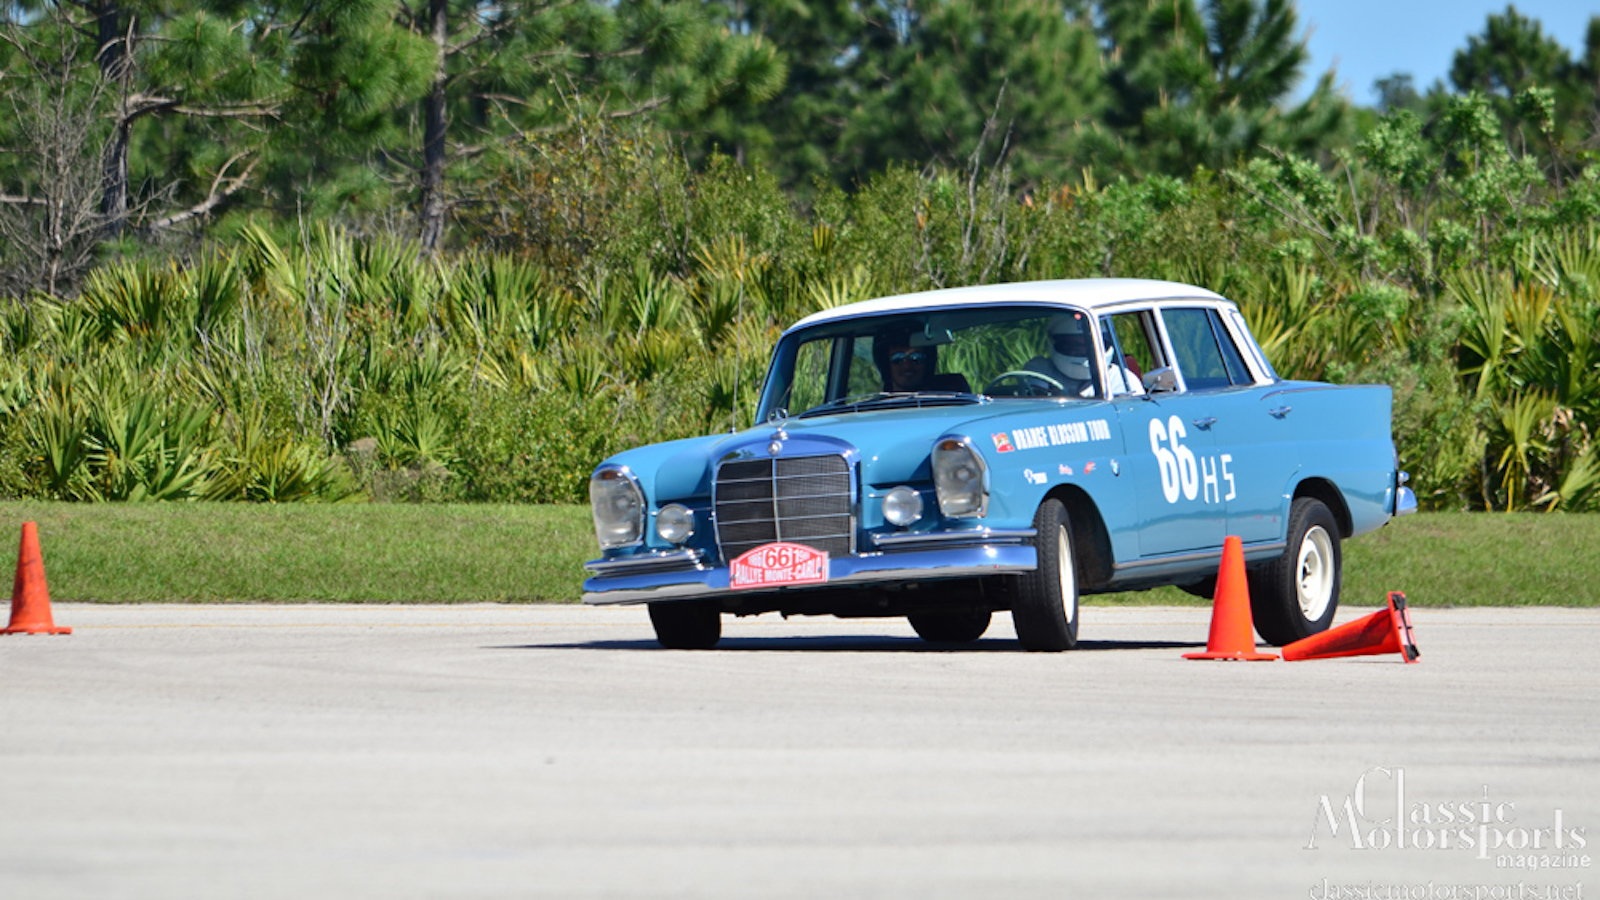 Some Thoughts on Autocross vs. Track Days